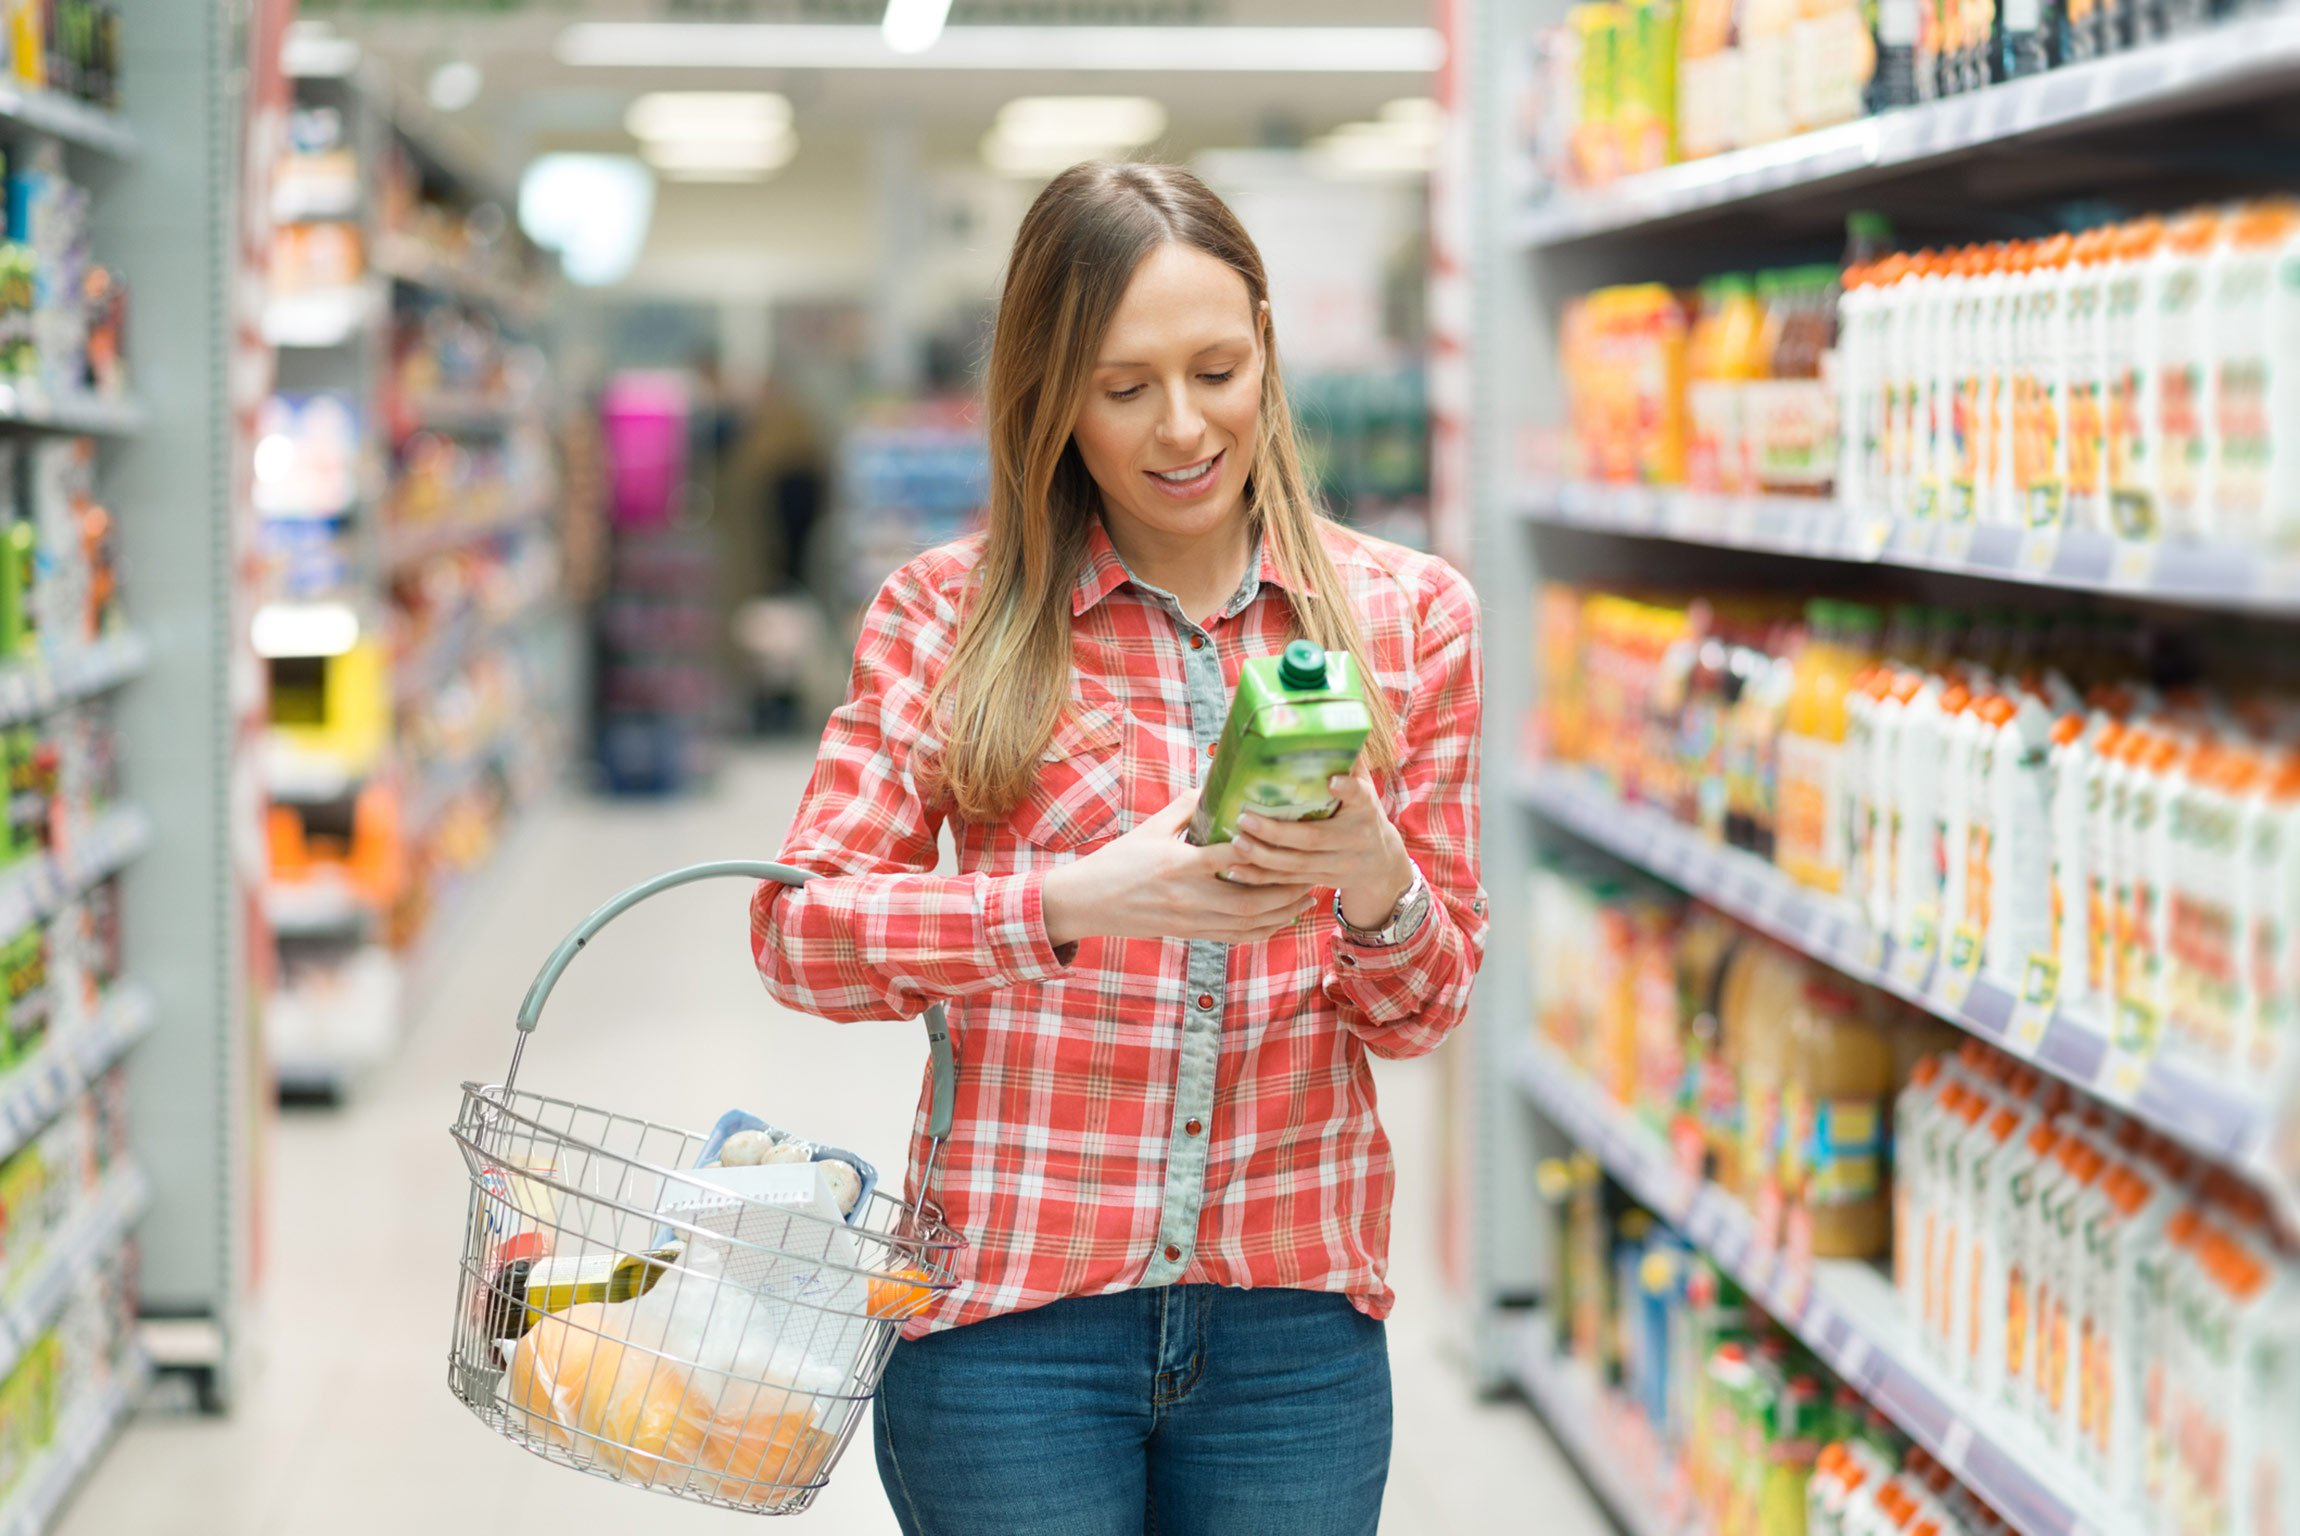 A woman shopping in a grocery store and reading a label